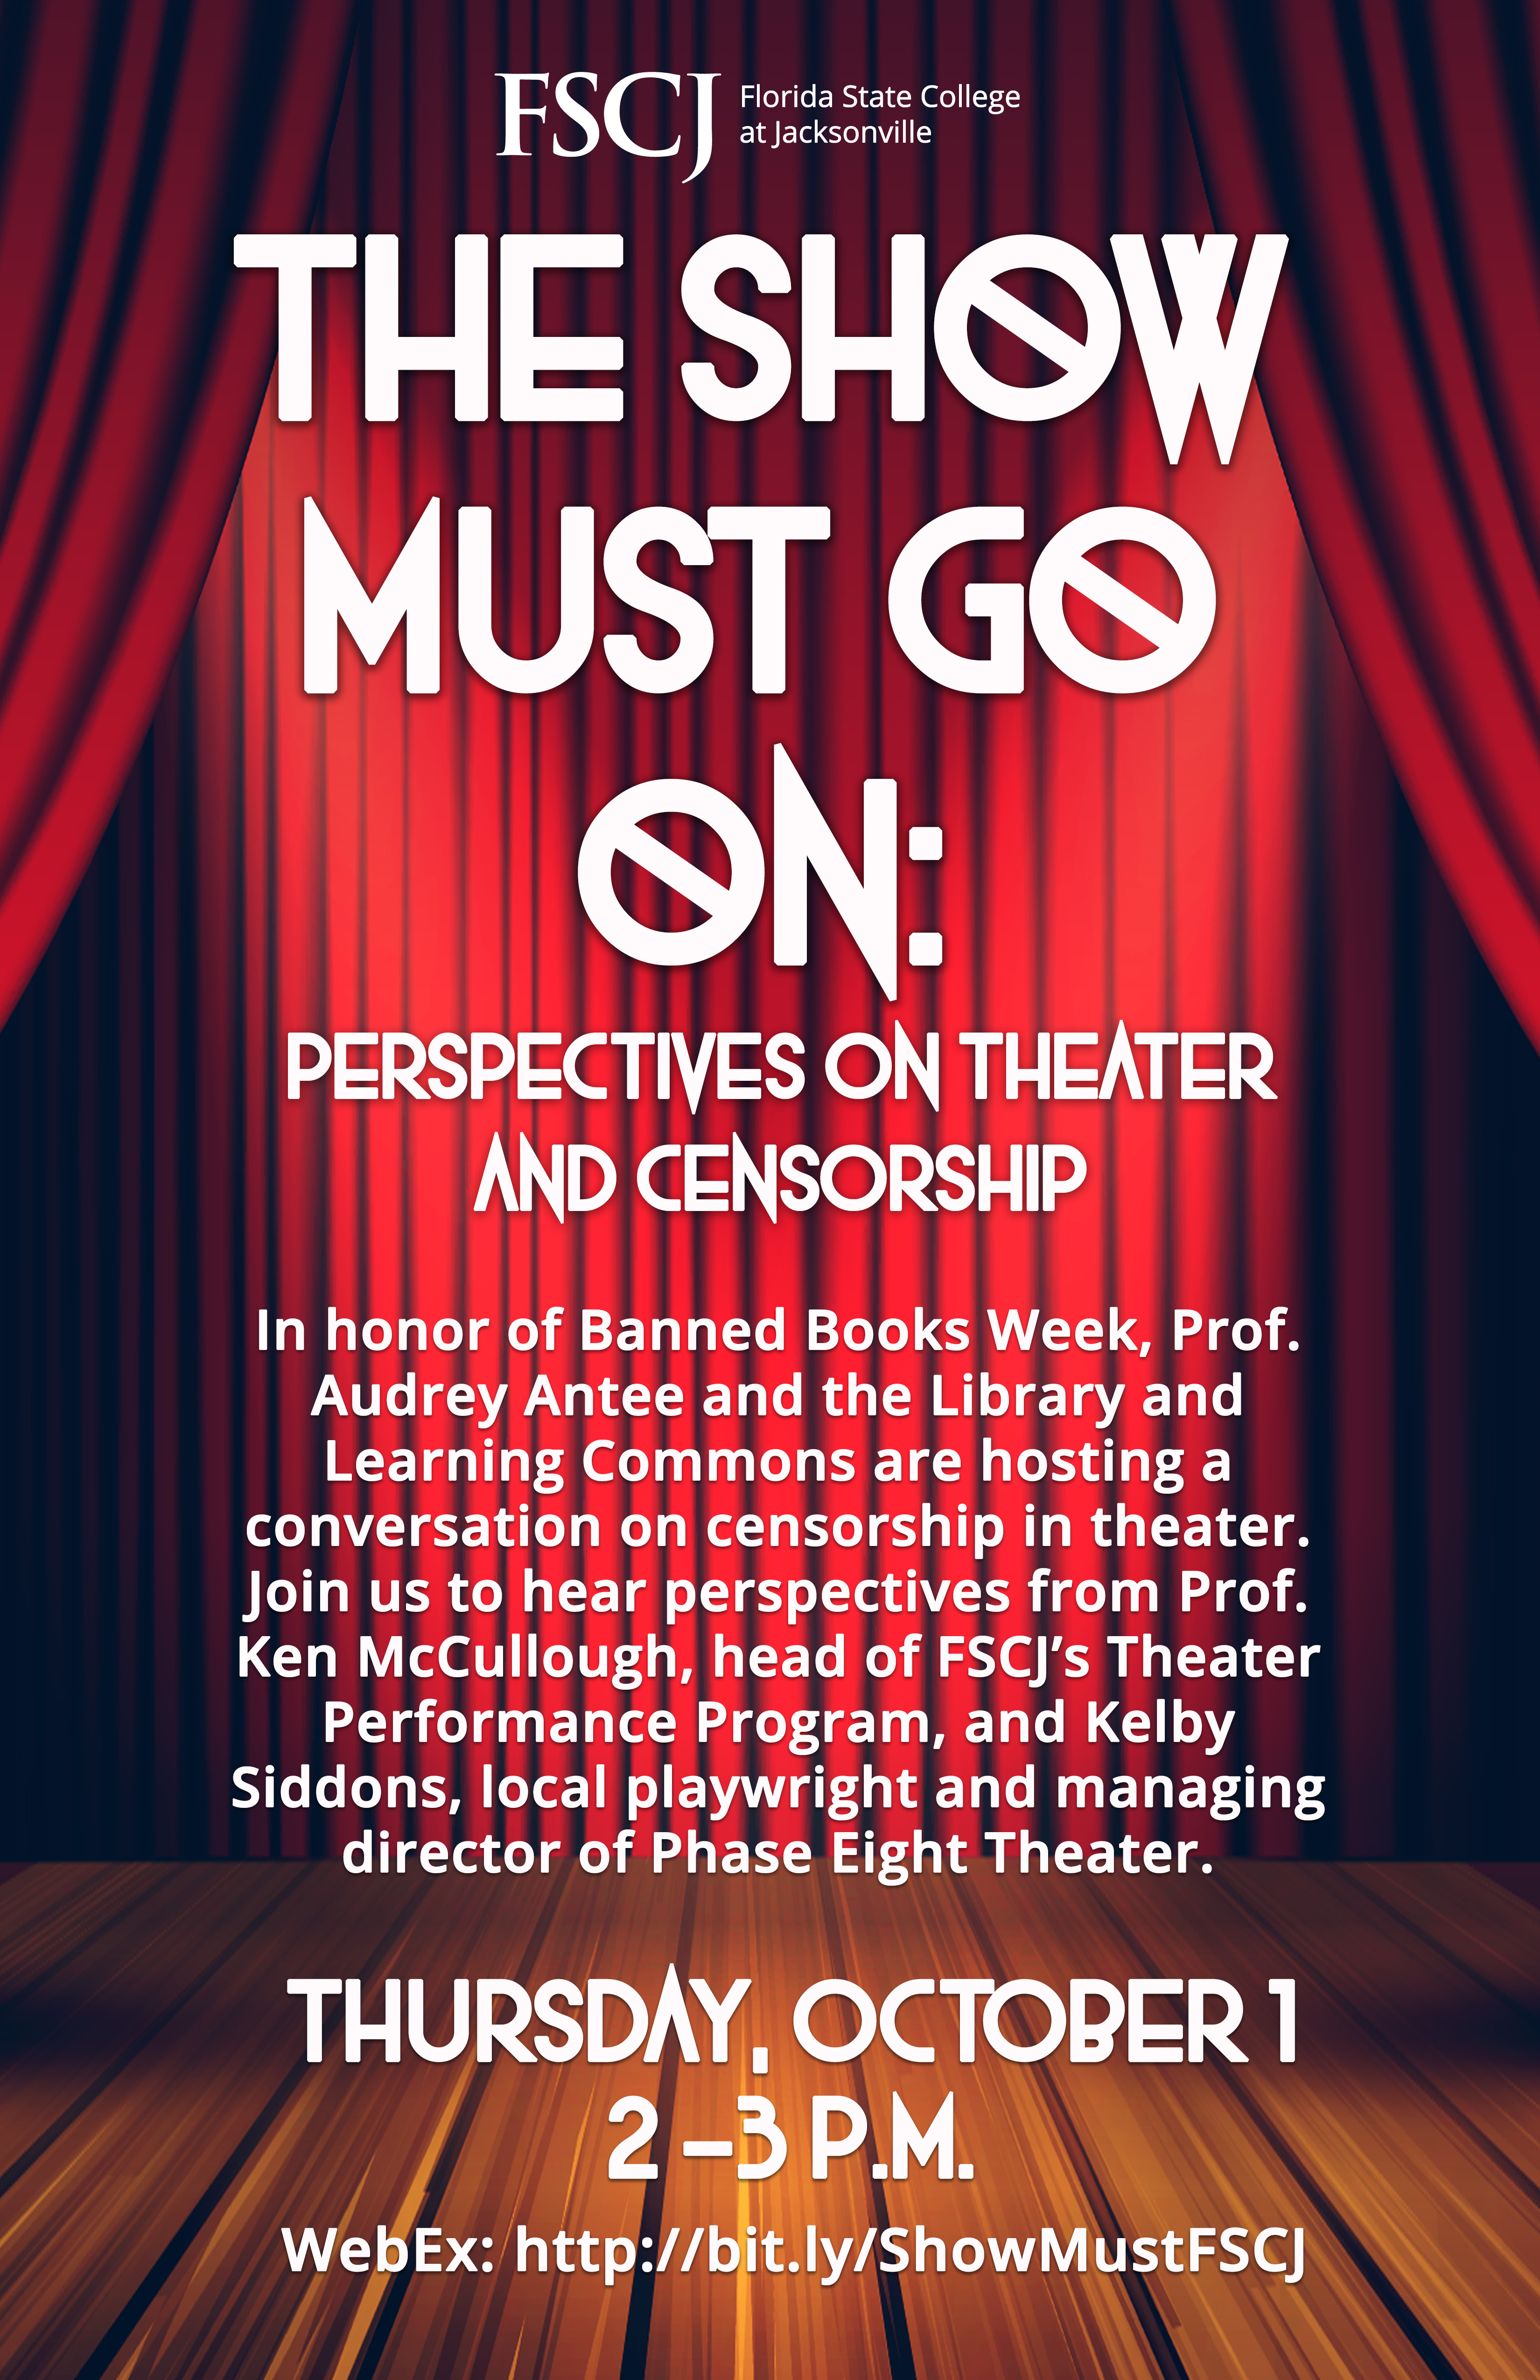 The Show Must Go On: Perspectives on Theater & Censorship